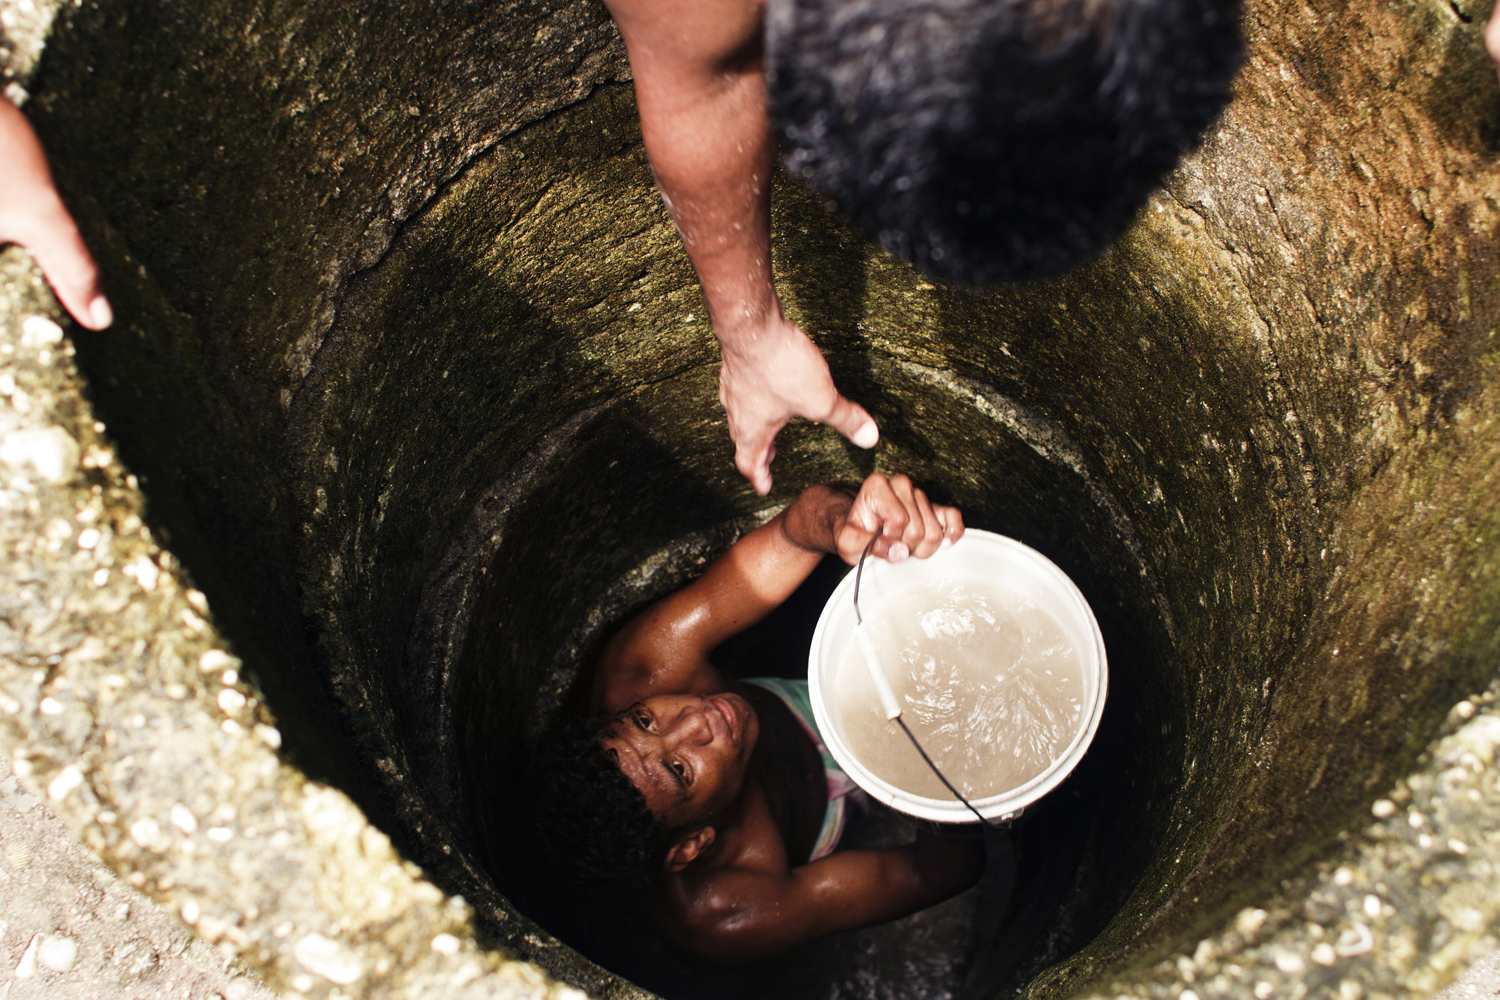 Island of Tarawa, Kiribati.A group of men emptying out contaminated water from a well. As sea levels have risen, many wells have become contaminated with salt water and can no longer be used.